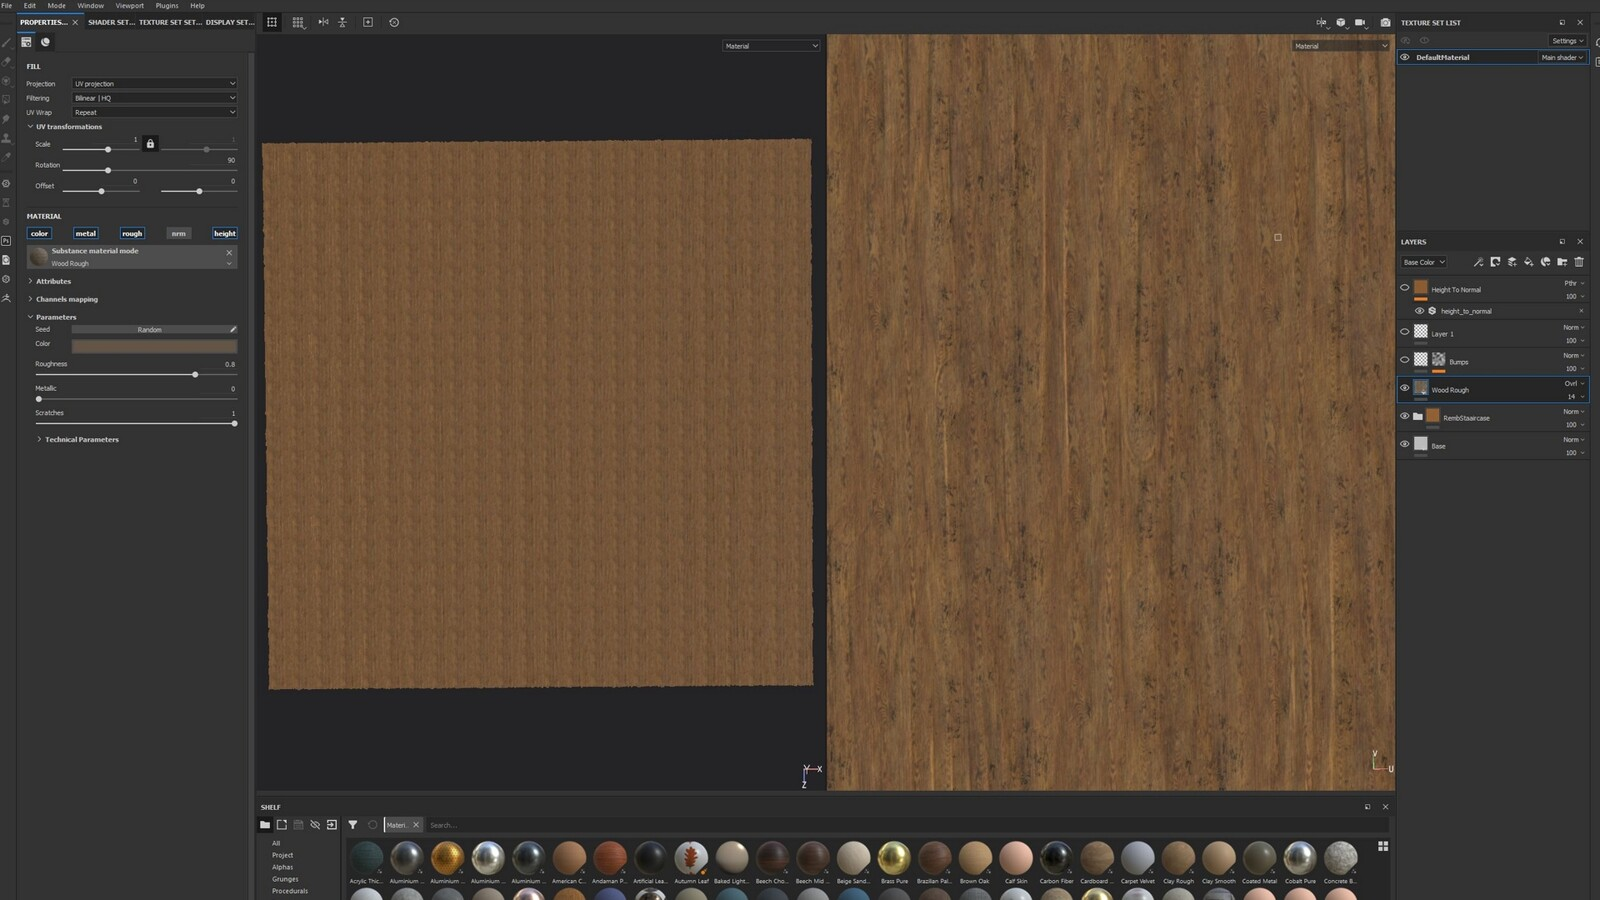 Import the smart material you created before. You may need to import individual texture layers sometimes depending on the texture complexity. Note that any specific paint layers will have to be added as individual masks.